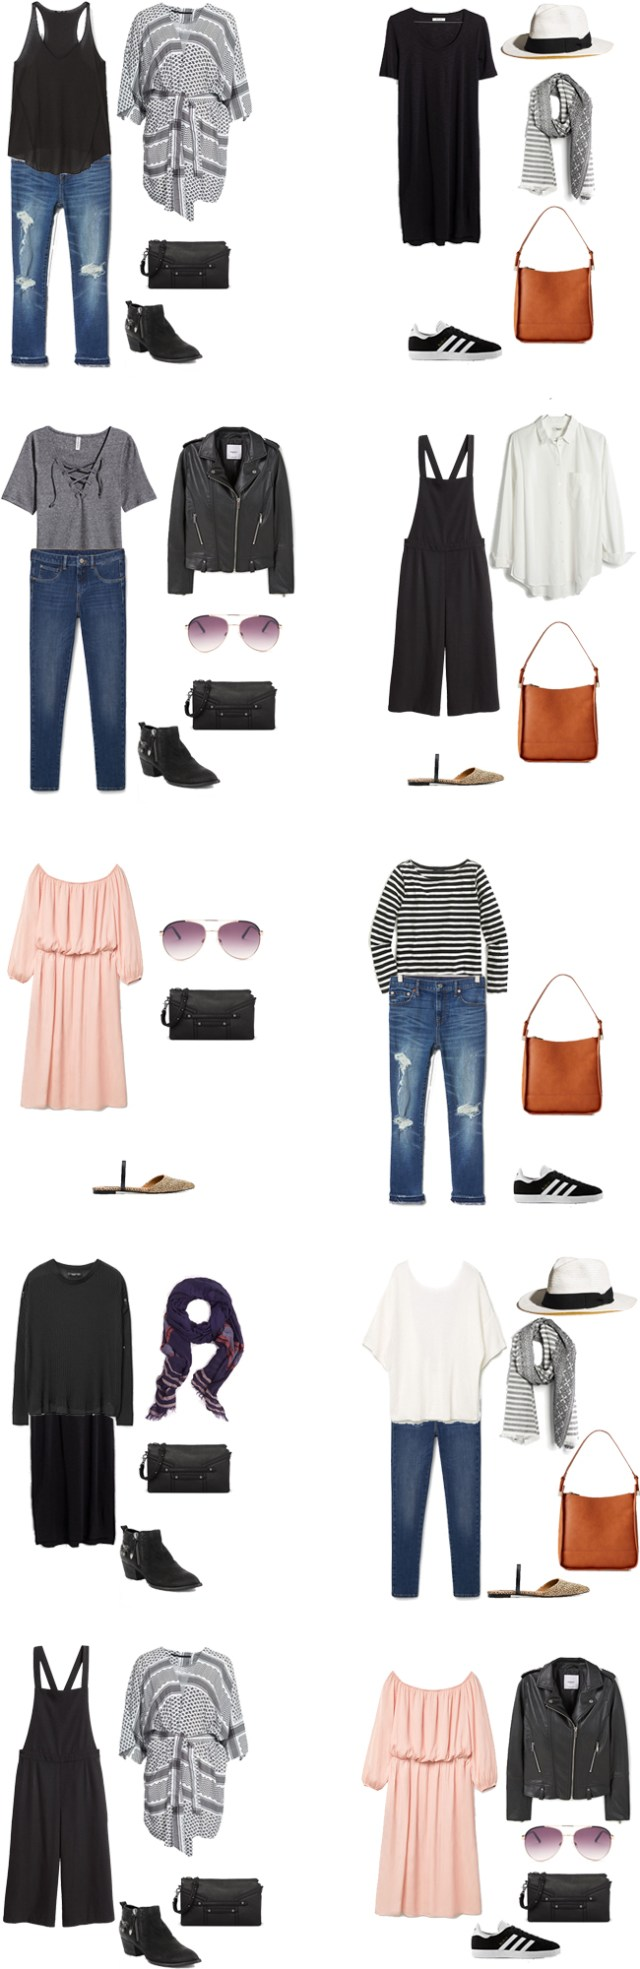 What to Wear in Italy and France Outfit Options 1-10 #travellight #packinglight #travel #traveltips